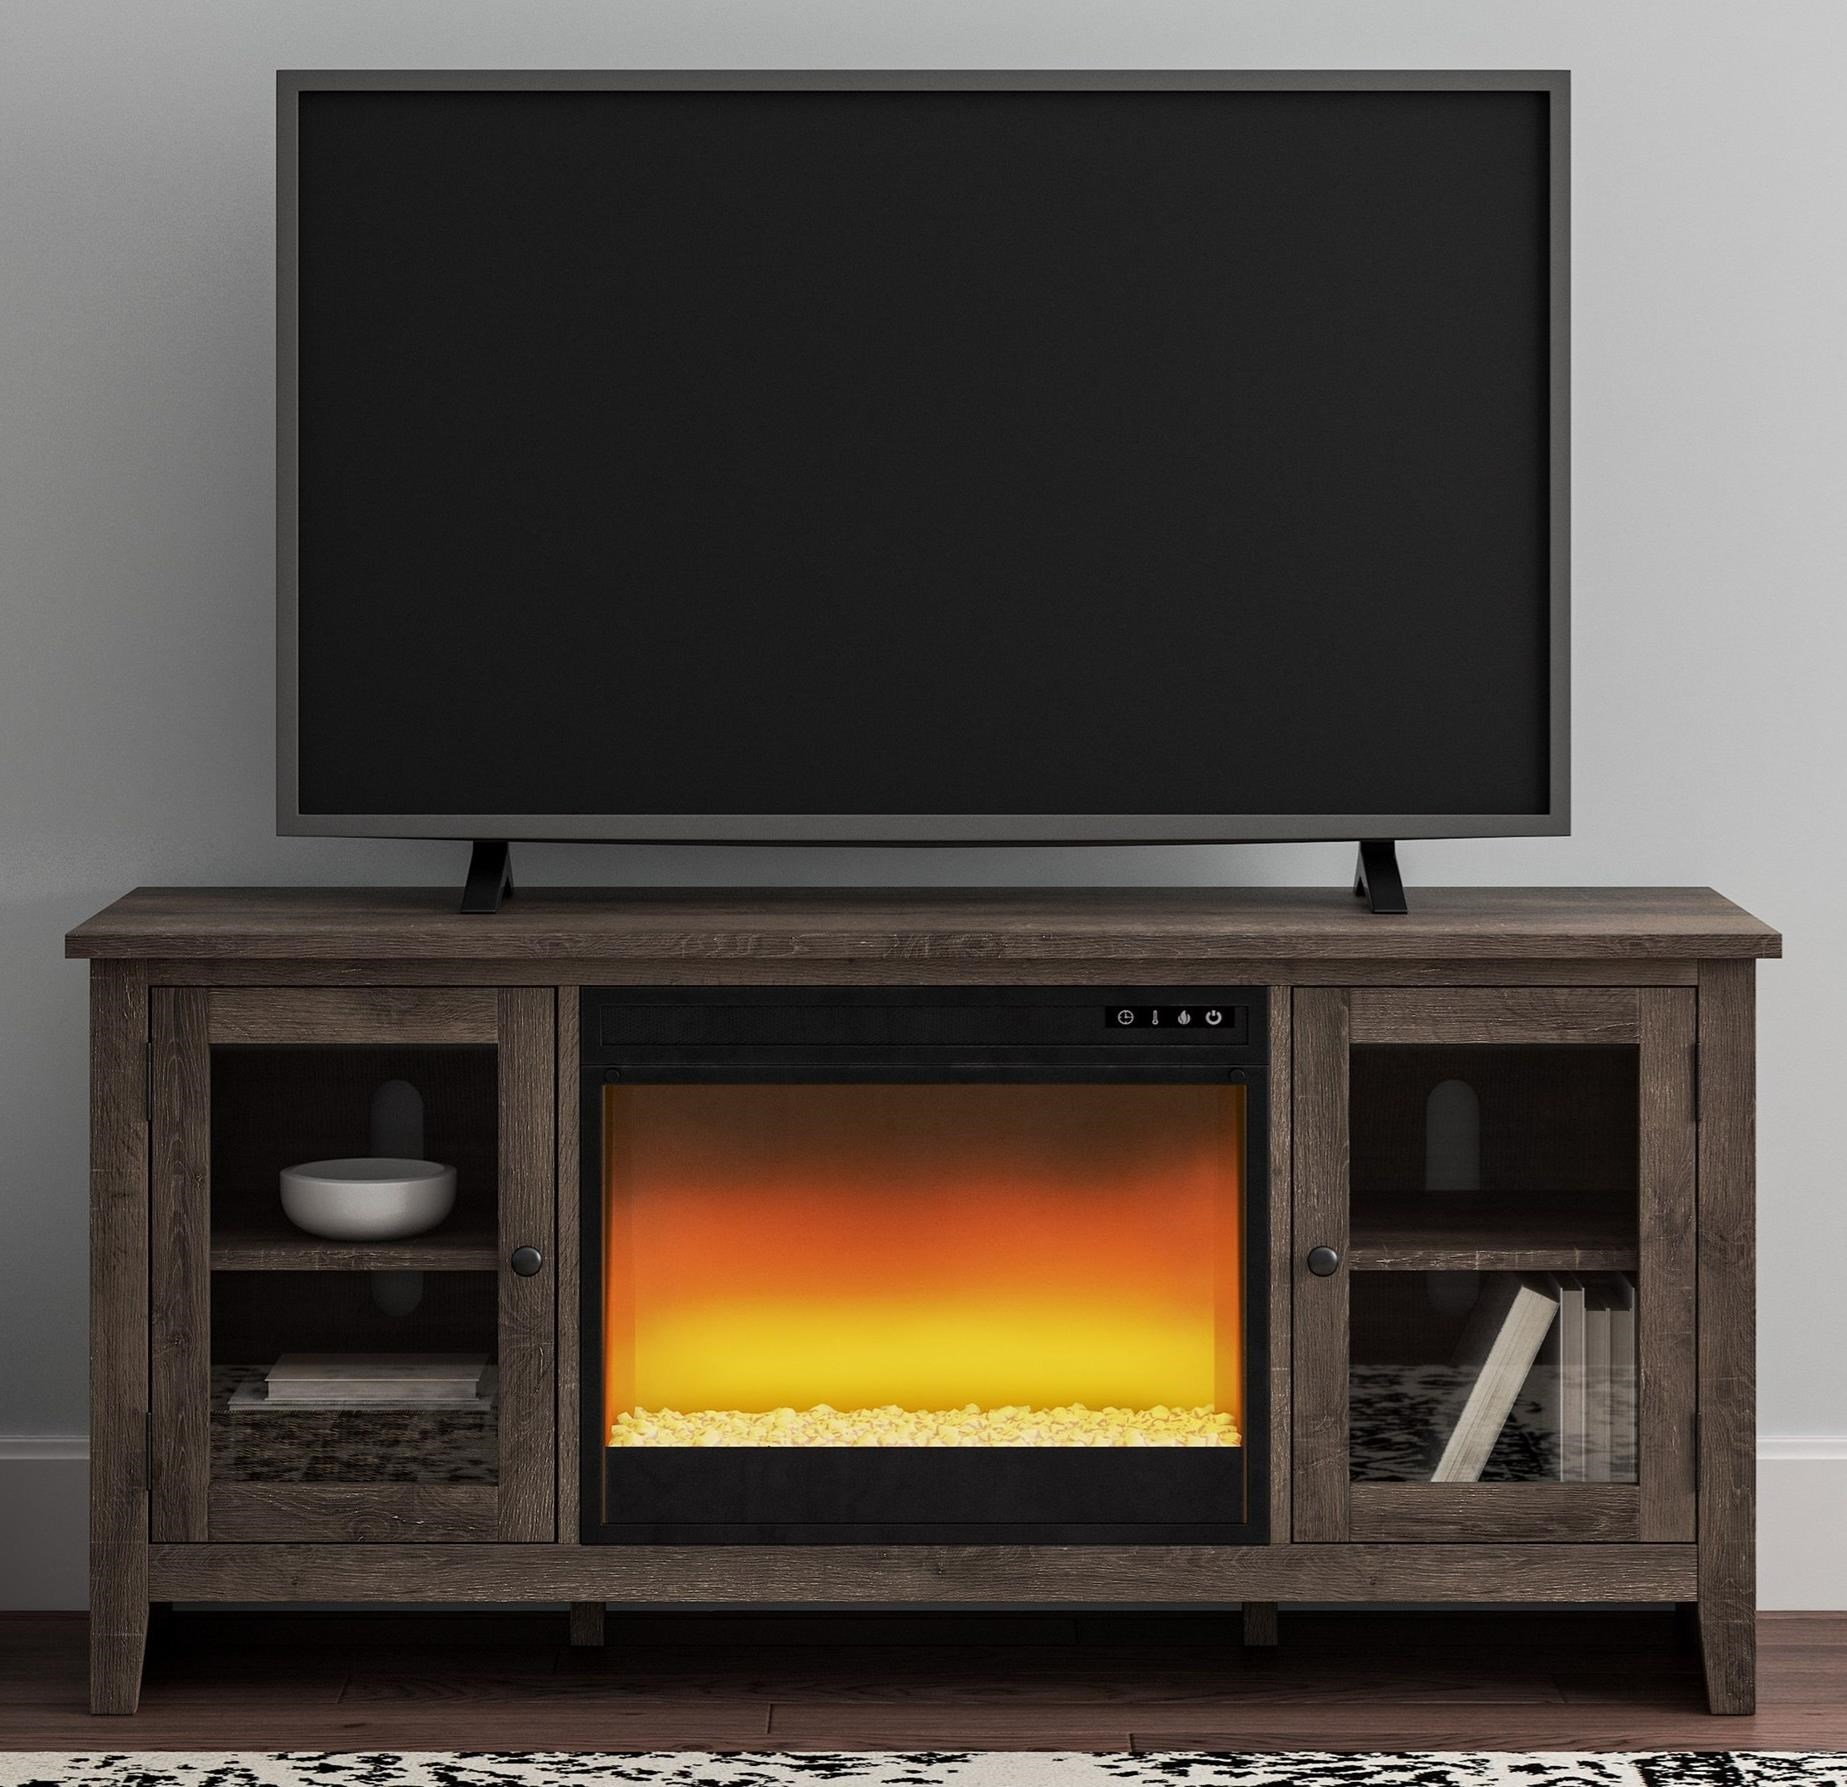 Arlenbry Large TV Stand w/ Fireplace Insert by Signature Design by Ashley at Household Furniture